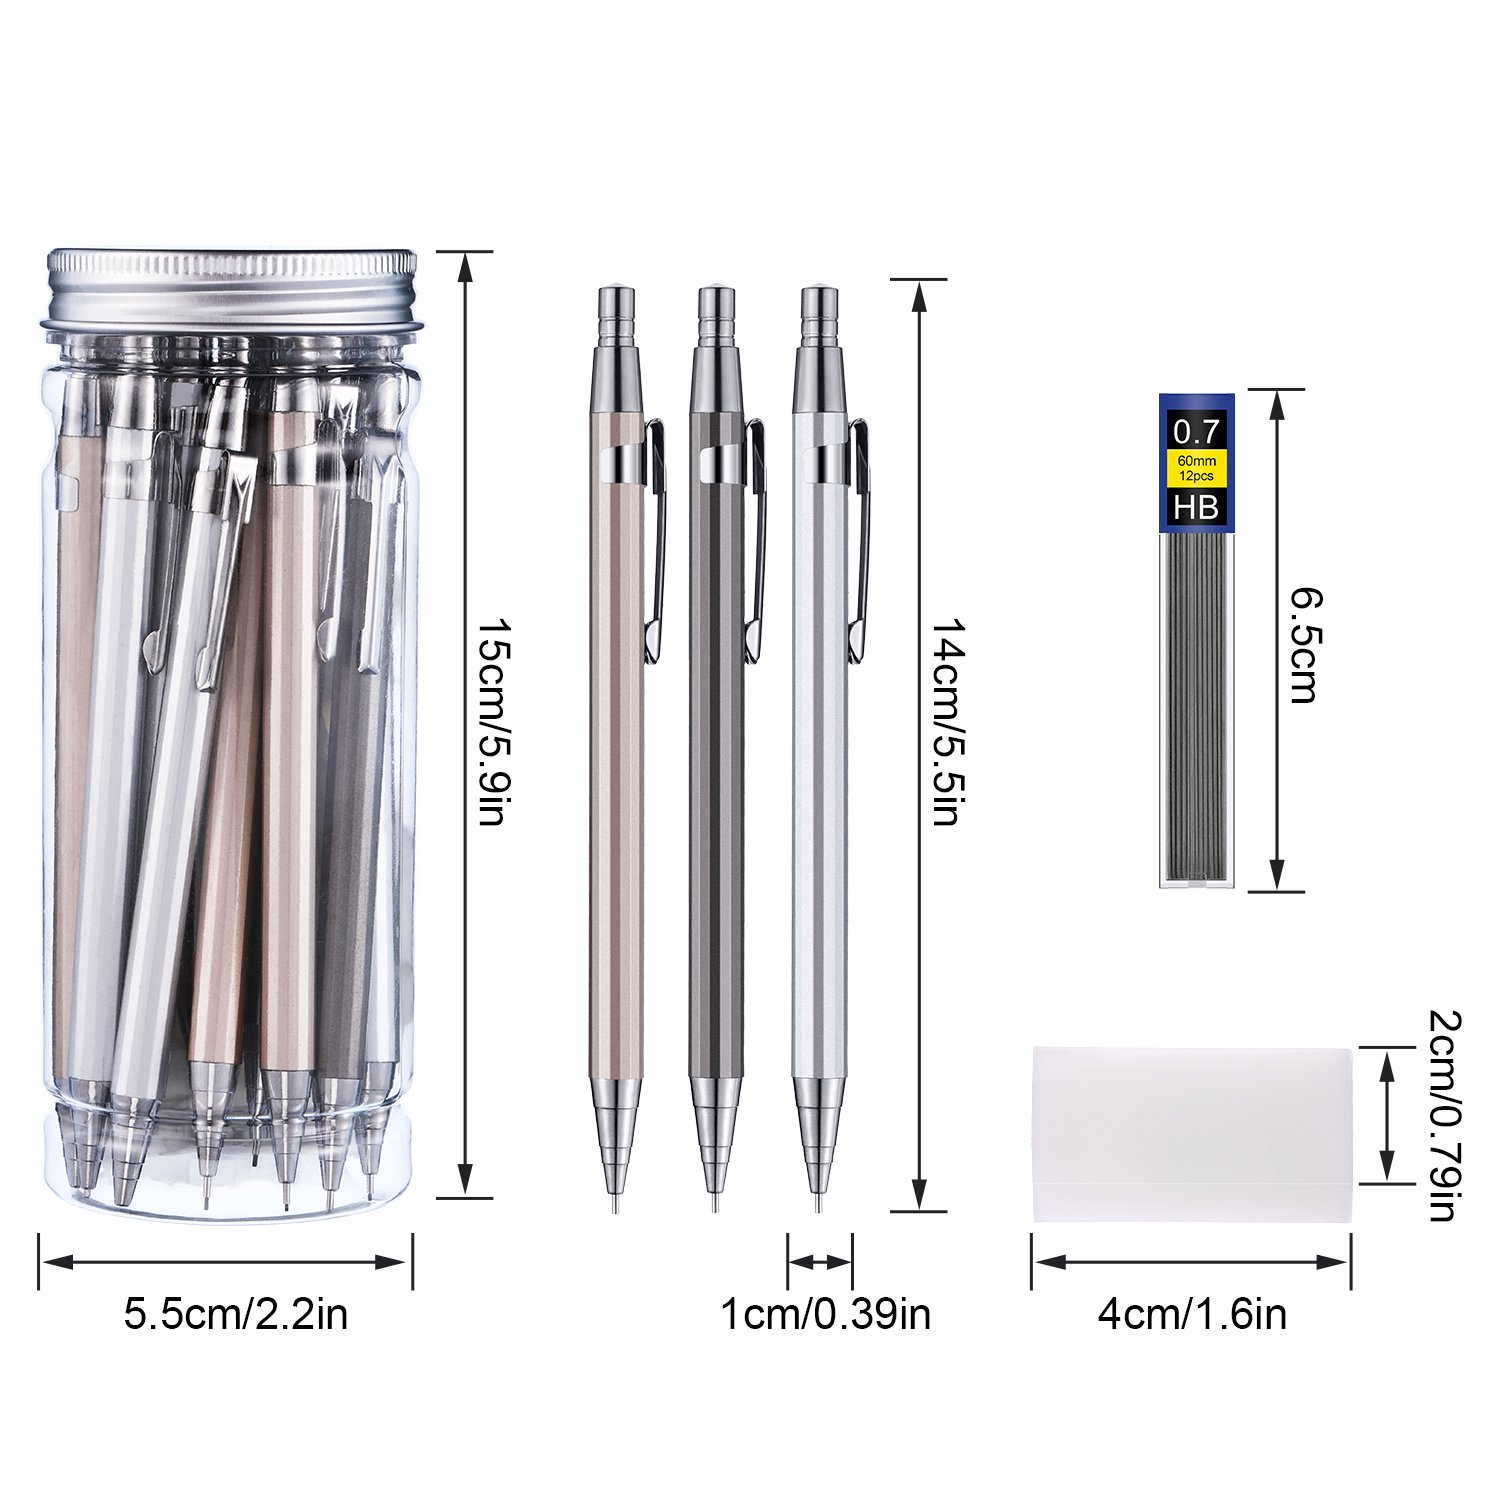 Boao 15 Pieces Metal Mechanical Pencils, 10 Tubes of Lead Refills and 3 Pieces Erasers with Clear Plastic Bottle, 0.7 mm (color set 1 0.7 mm) by Boao (Image #2)